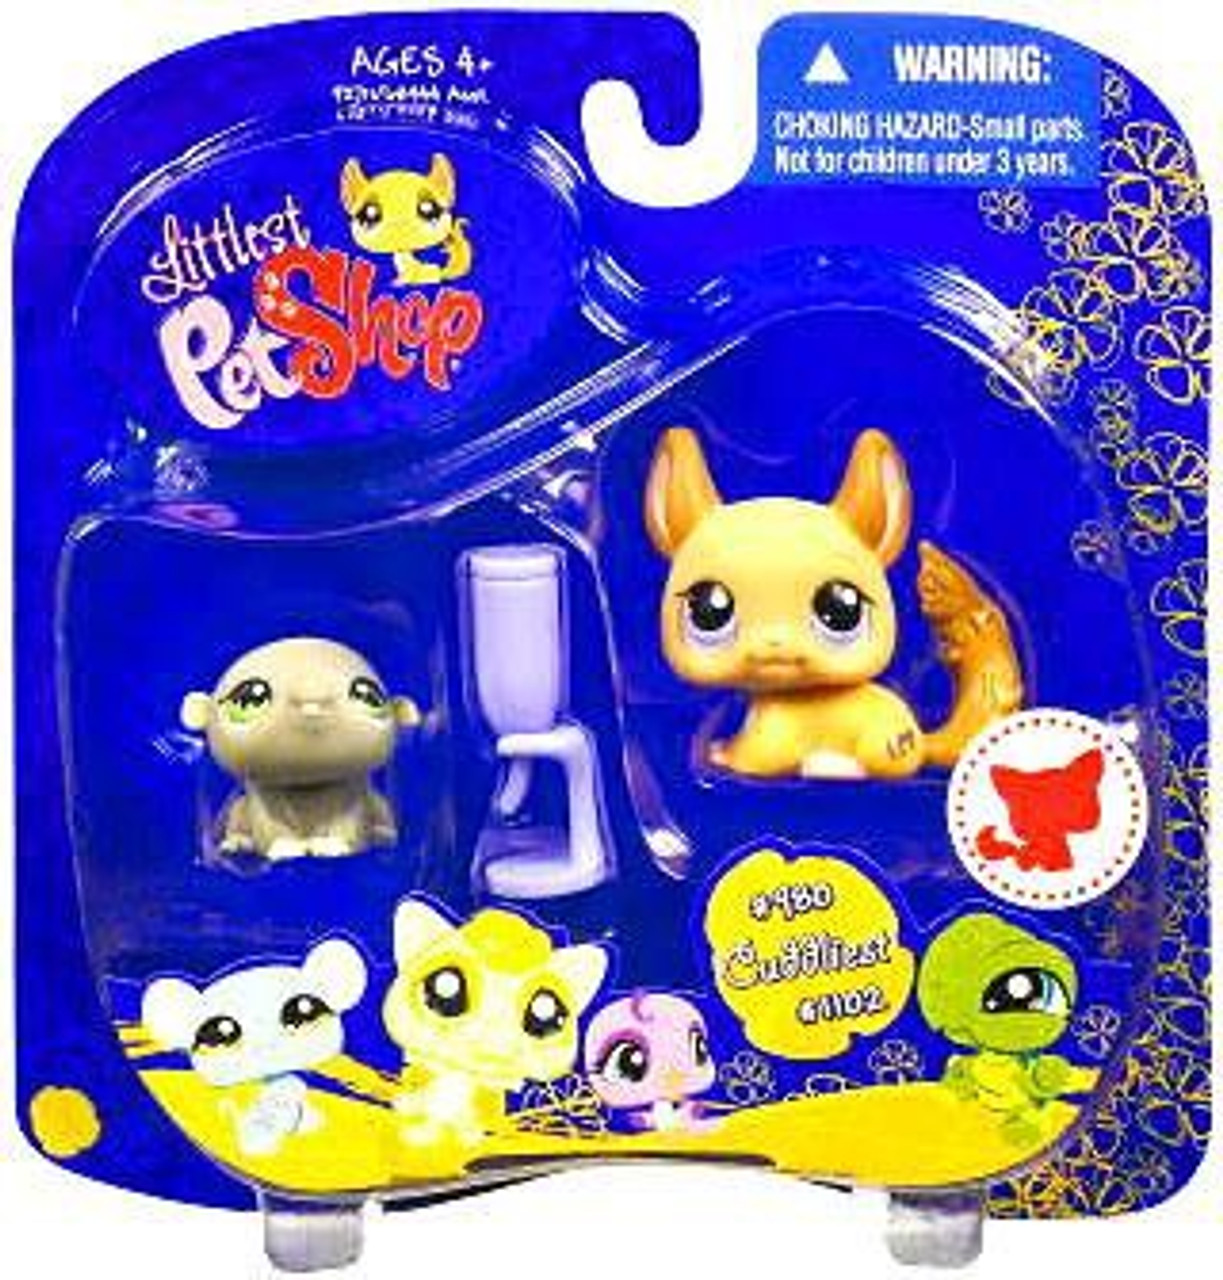 Littlest Pet Shop 2009 Assortment A Series 4 Hamster Figure 2-Pack #980 [Water Bottle]